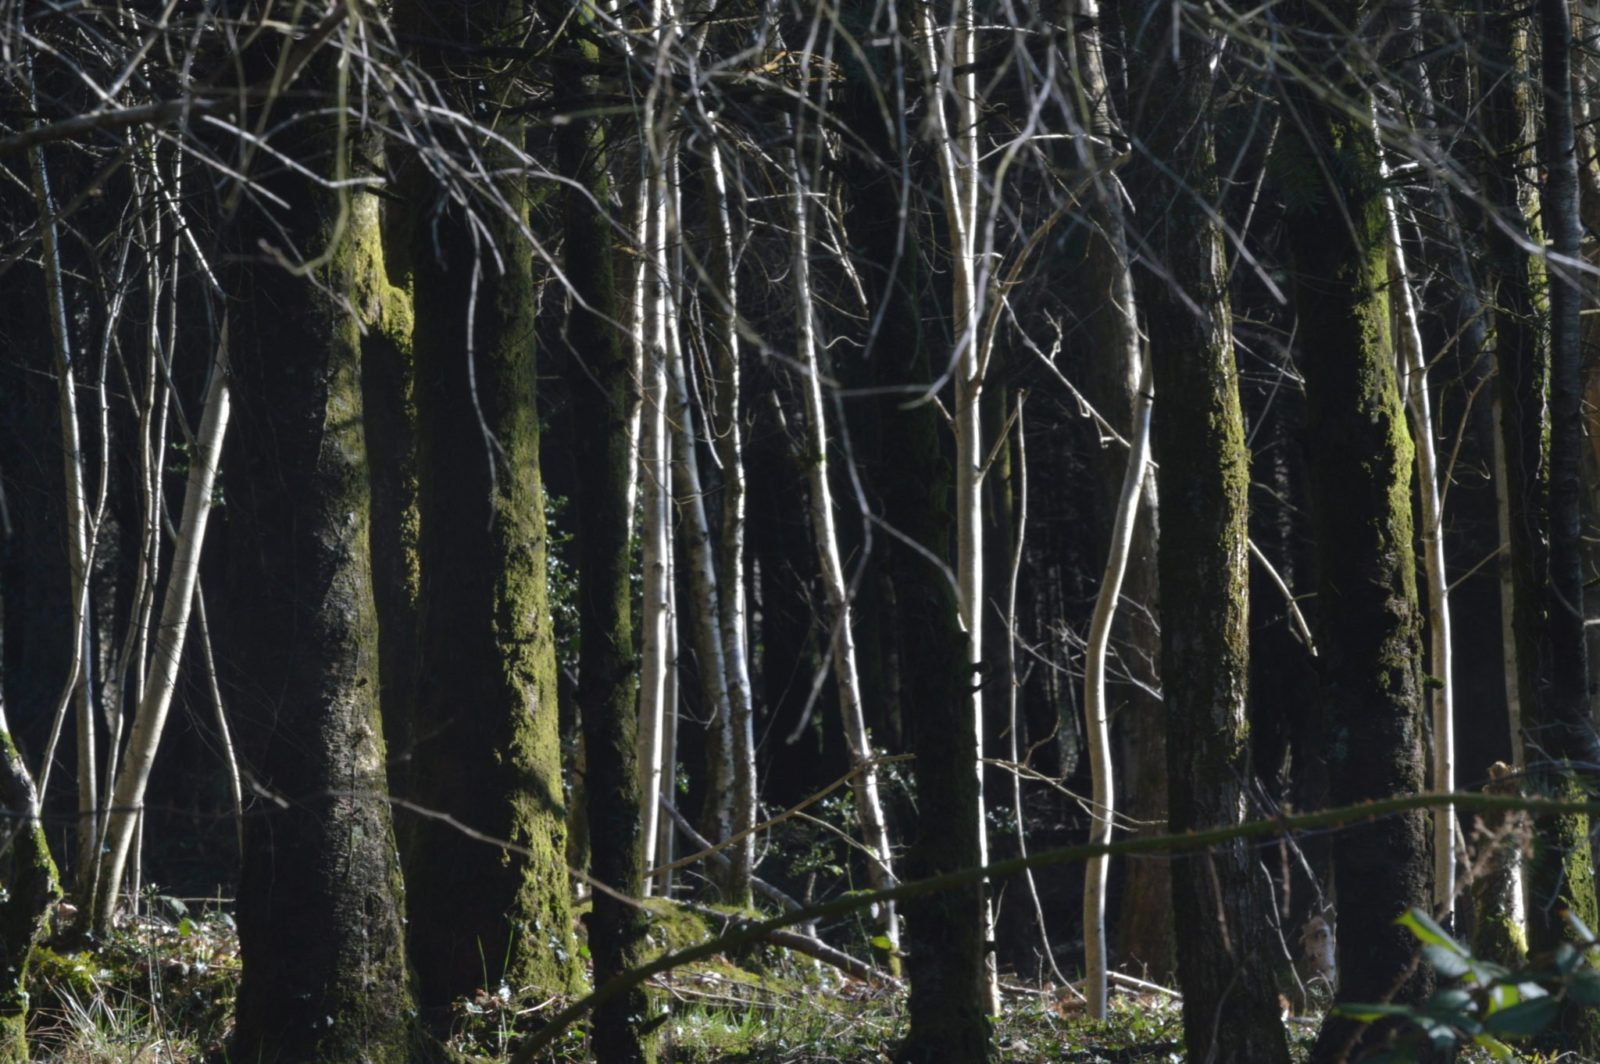 Grey, moss-covered tree trunks and white tree trunks in the sunlight. Photograph of the verticality of trees.